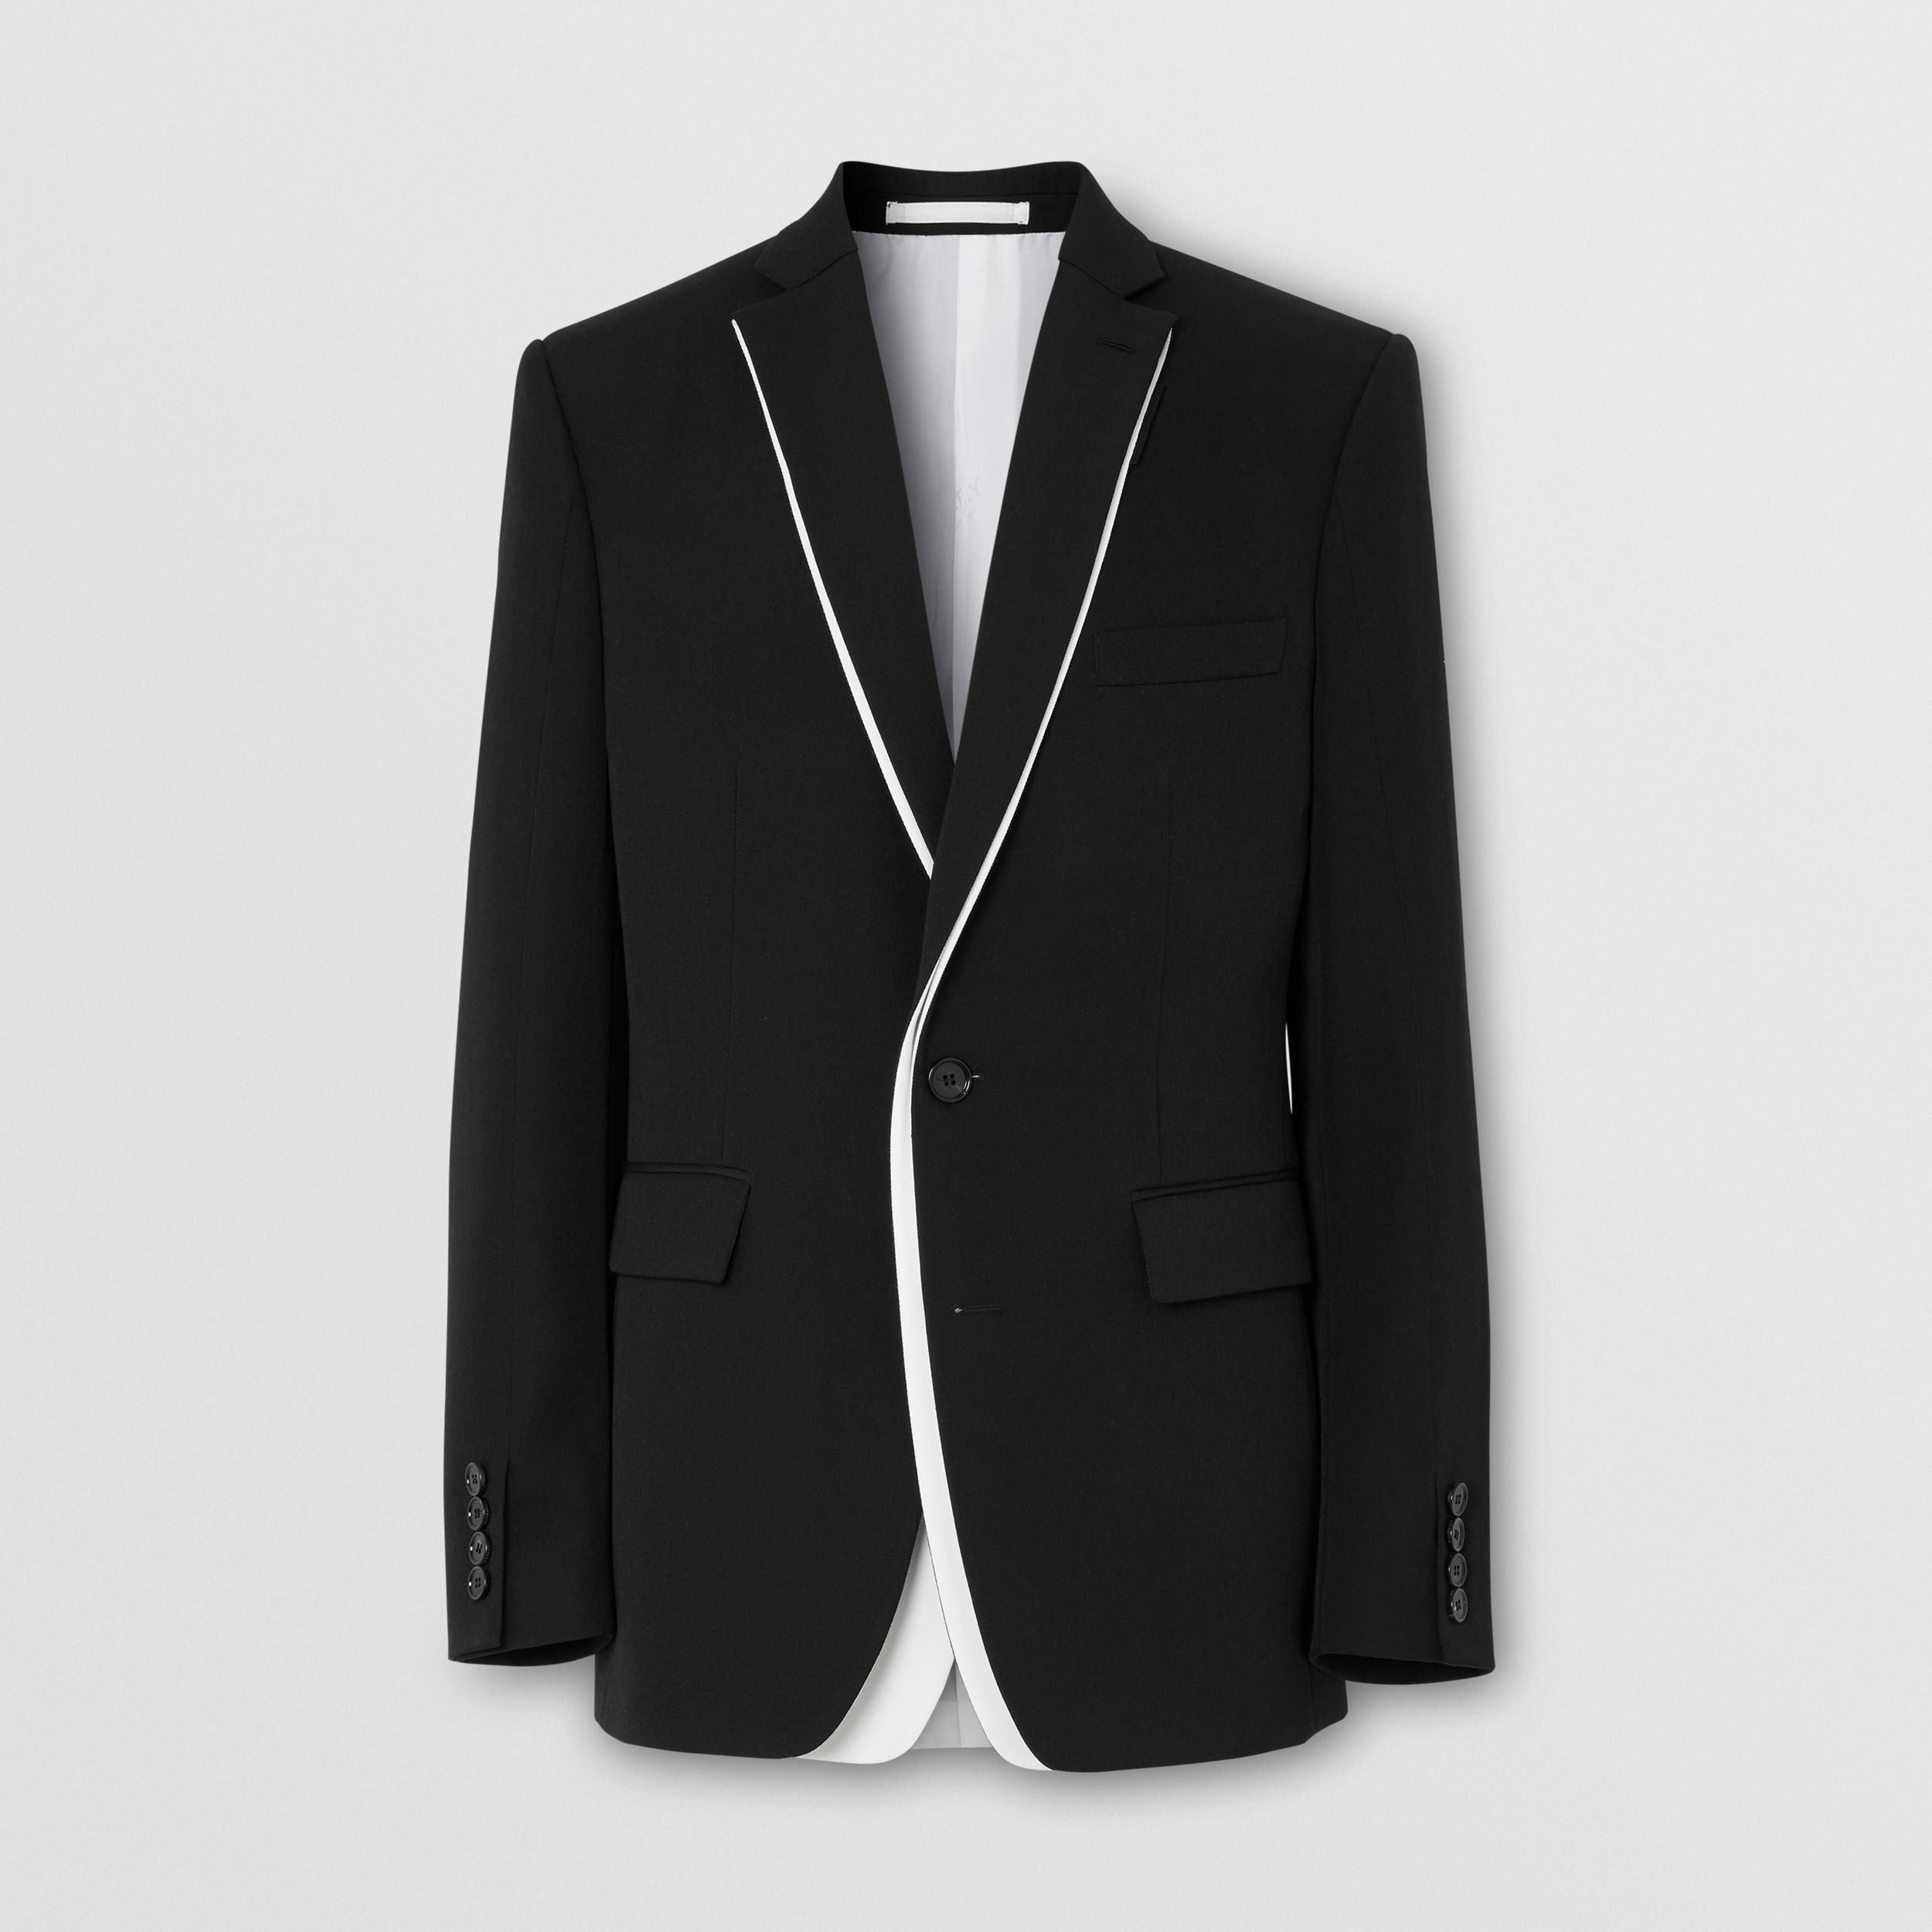 English Fit Double-front Detail Wool Tailored Jacket in Black - Men | Burberry - 4